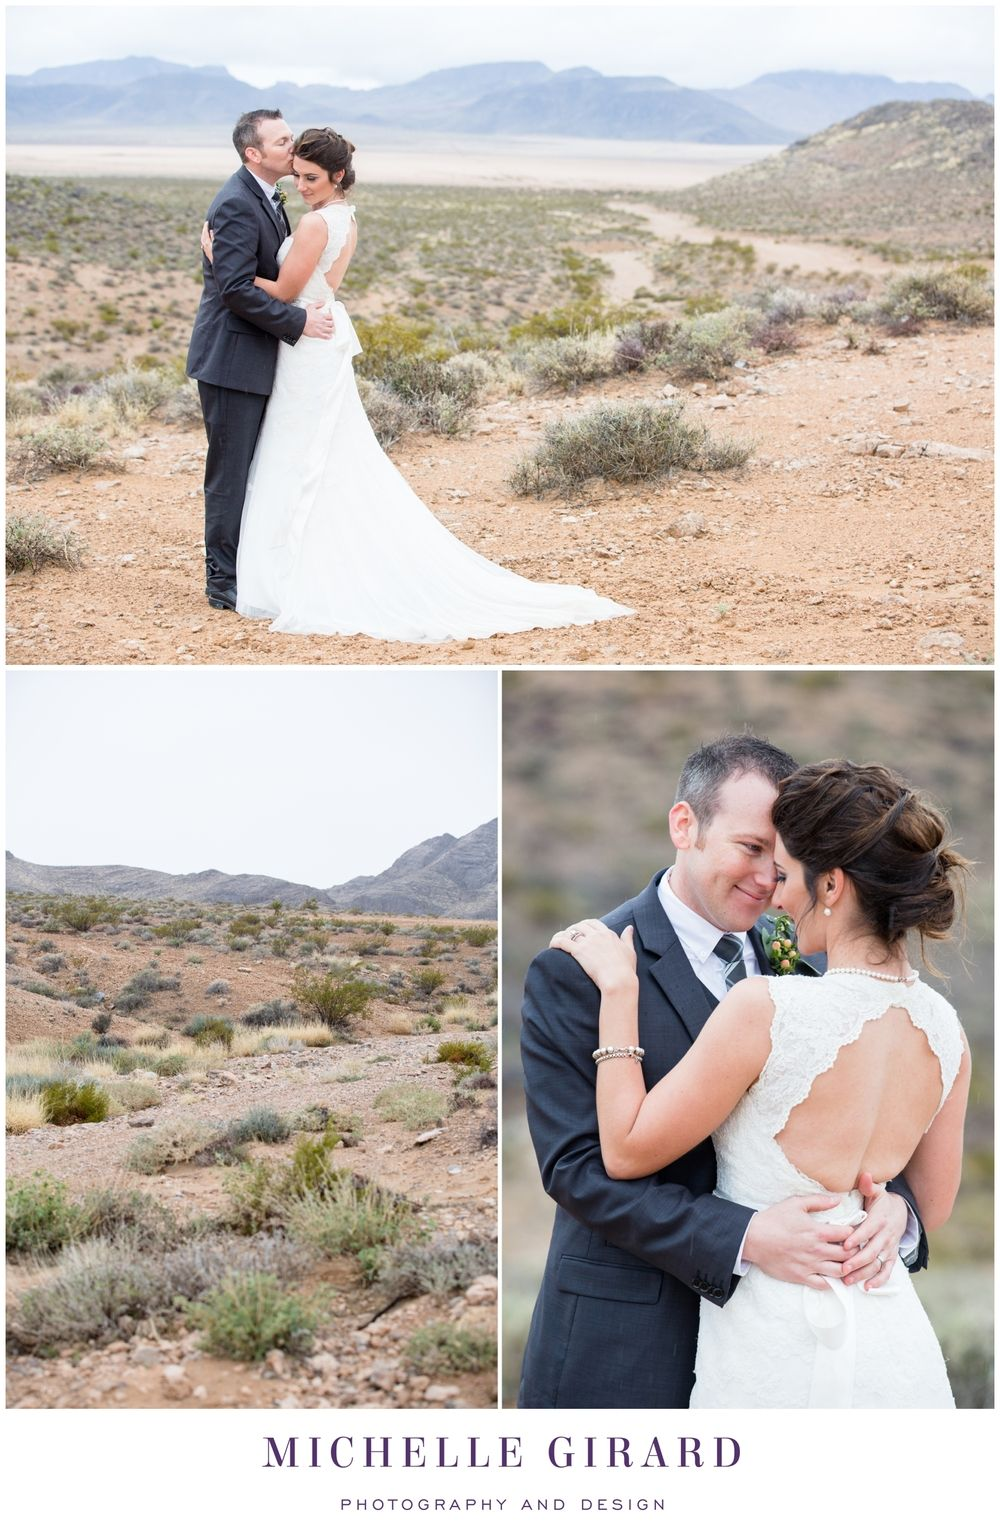 Bride and Groom Romantic Portrait :: Cloudy Desert Day :: Wedding Gown with Lace and an Open Back :: Southwest Desert Wedding in Nevada outside of Las Vegas :: Michelle Girard Photography and Design